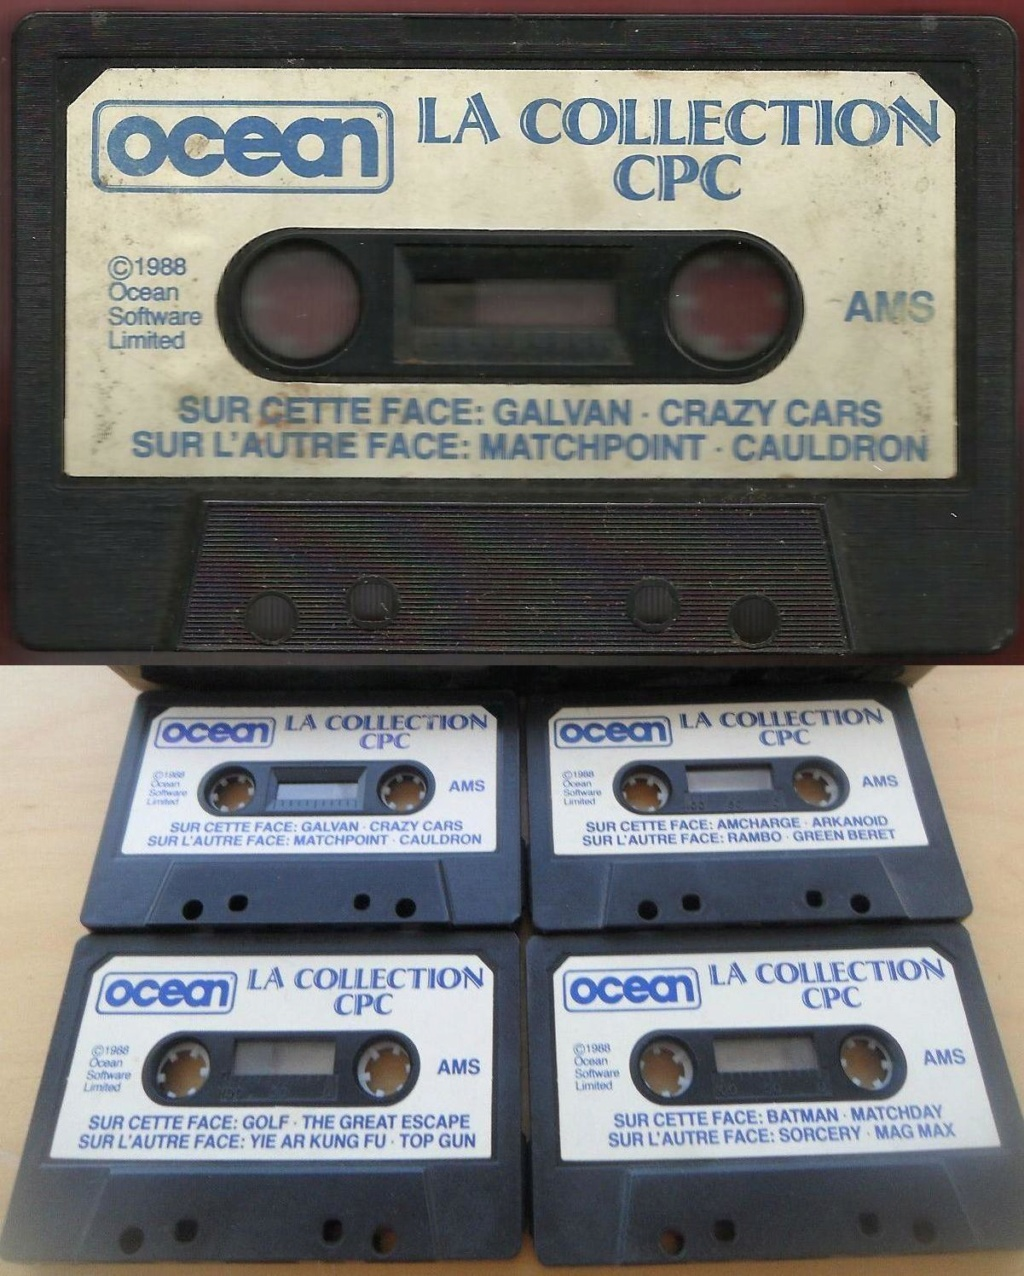 [DON] Collection CPC ocean Compil10